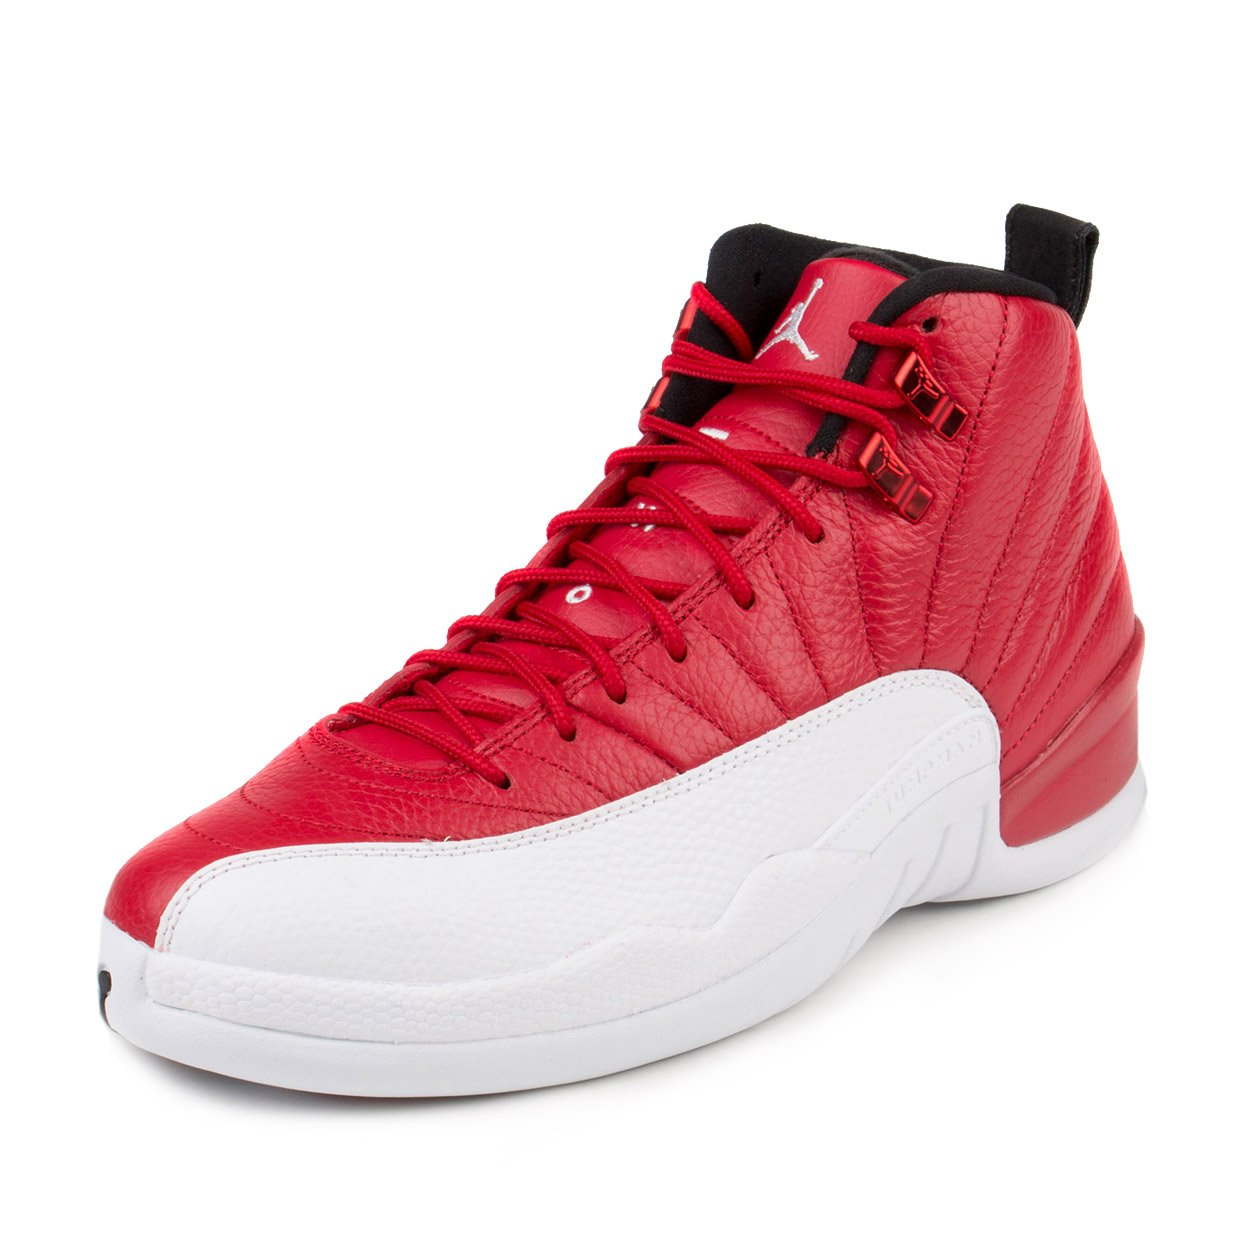 Air Jordan 12 Retro - 8 ''Gym Red'' - 130690 600 by NIKE